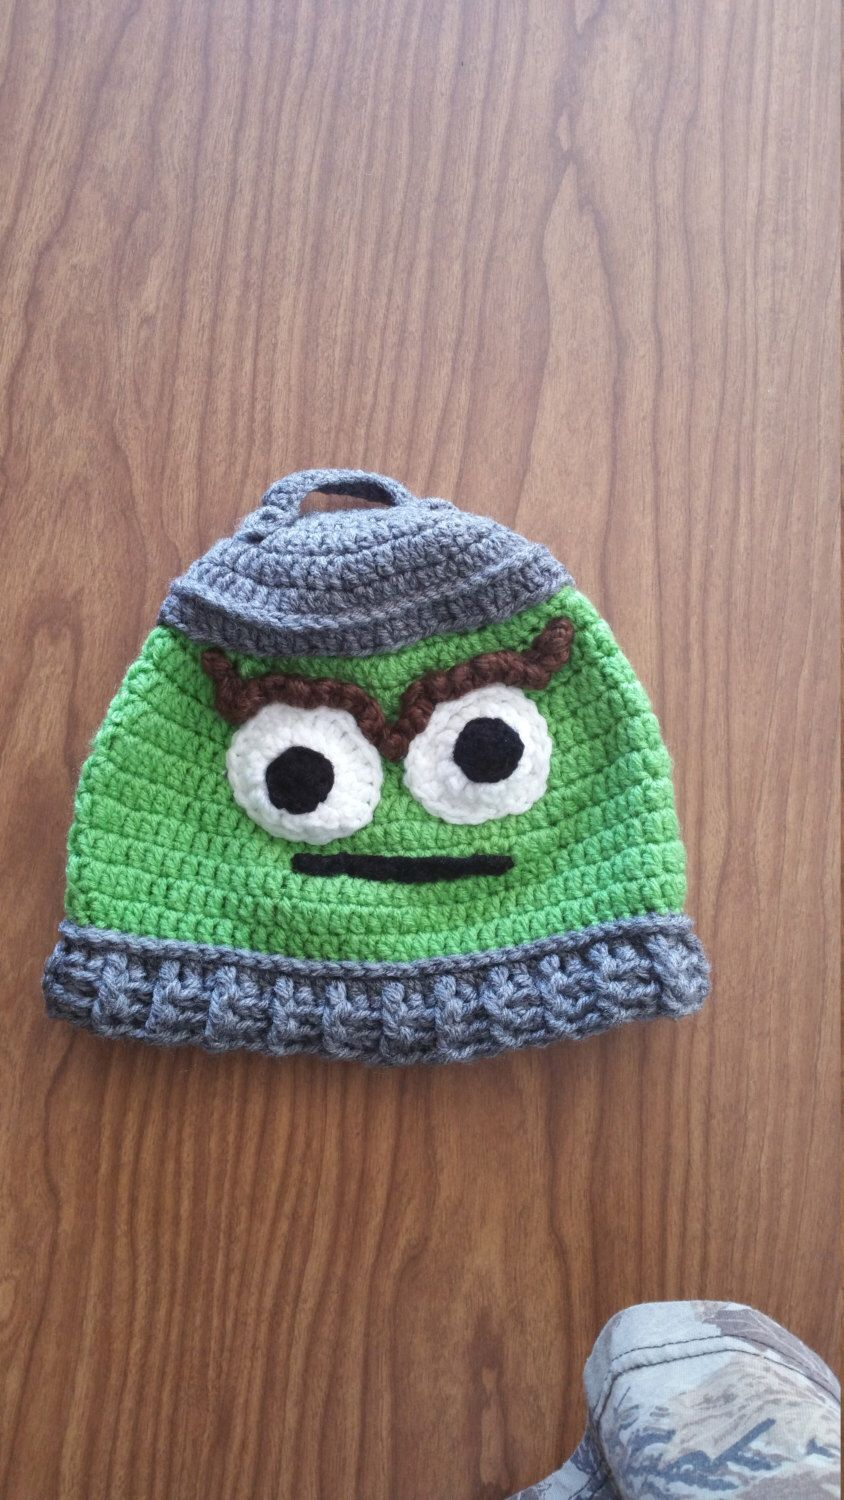 1ab684b6144 Oscar the Grouch crochet hat by VintageVioletLove on Etsy